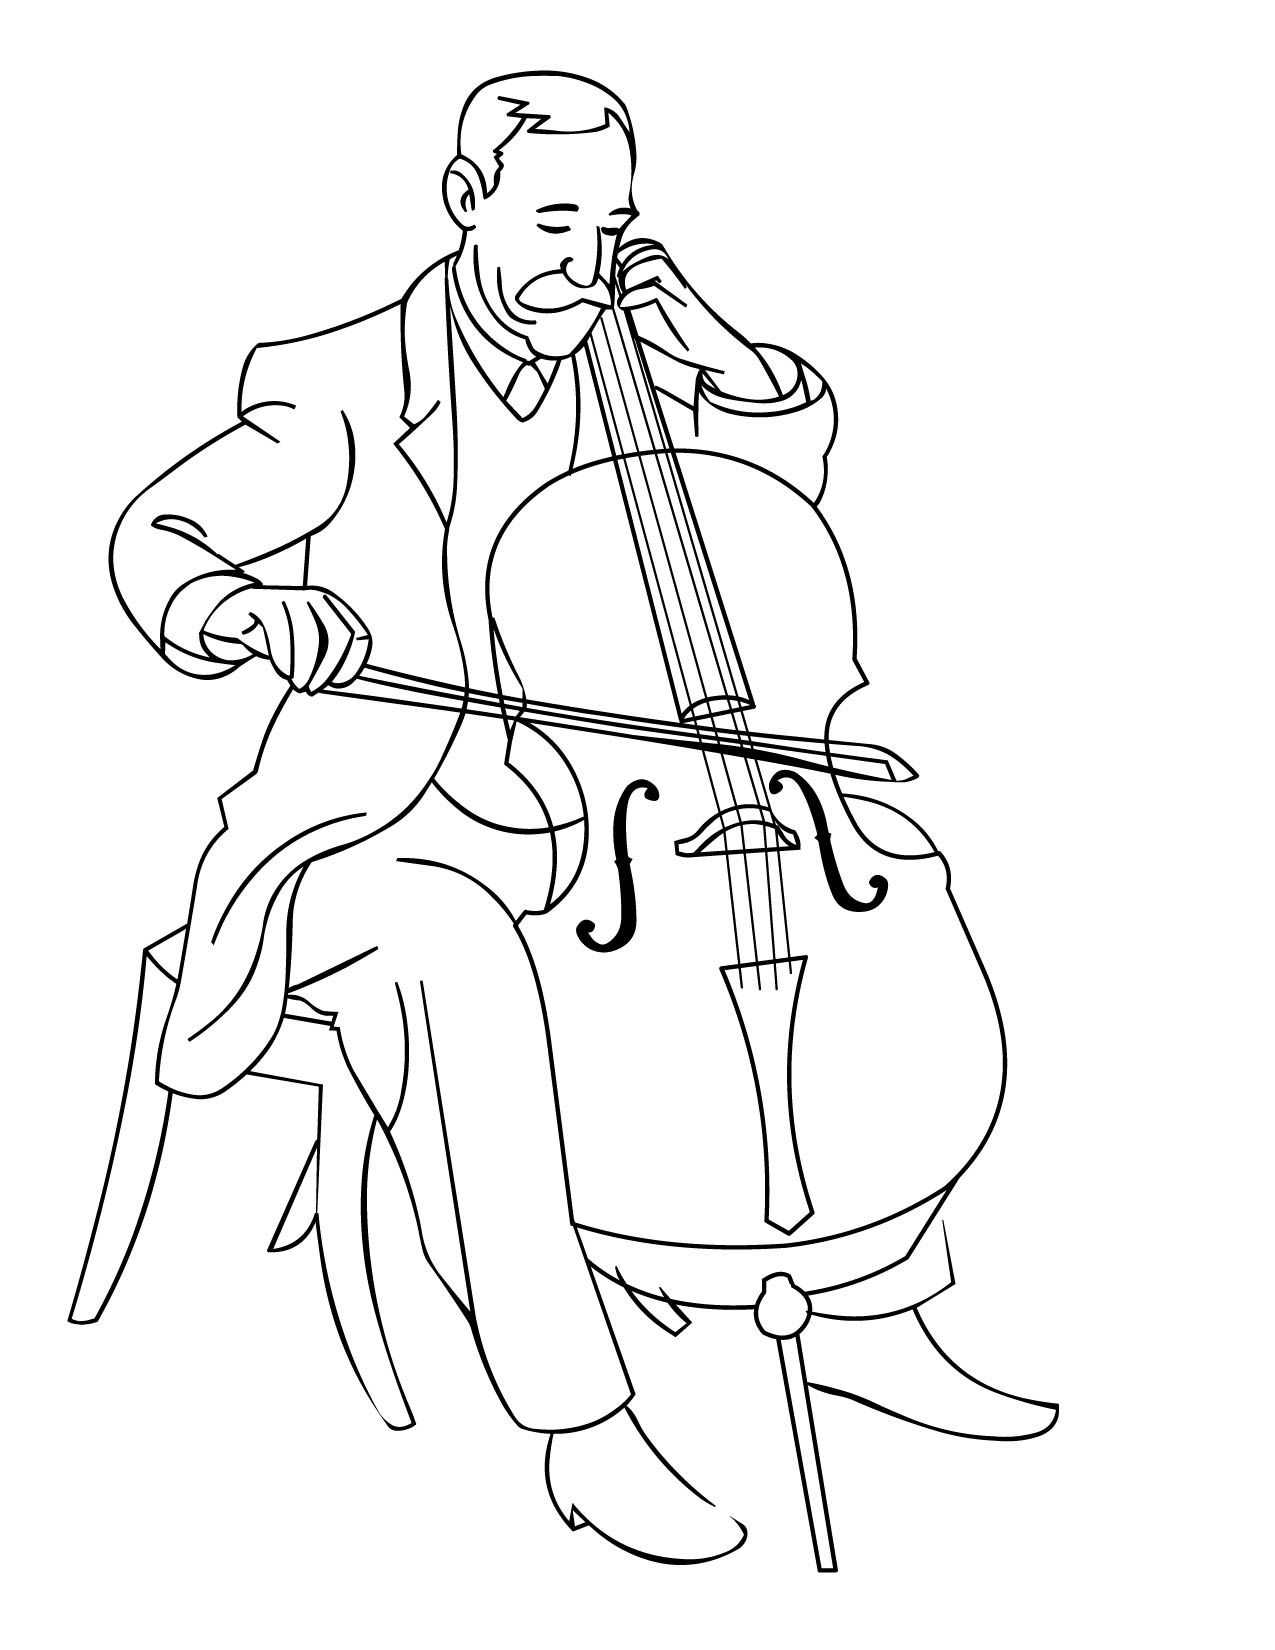 free printable coloring pages of musical instruments music instrument coloring page getcoloringpagescom of printable free pages musical instruments coloring